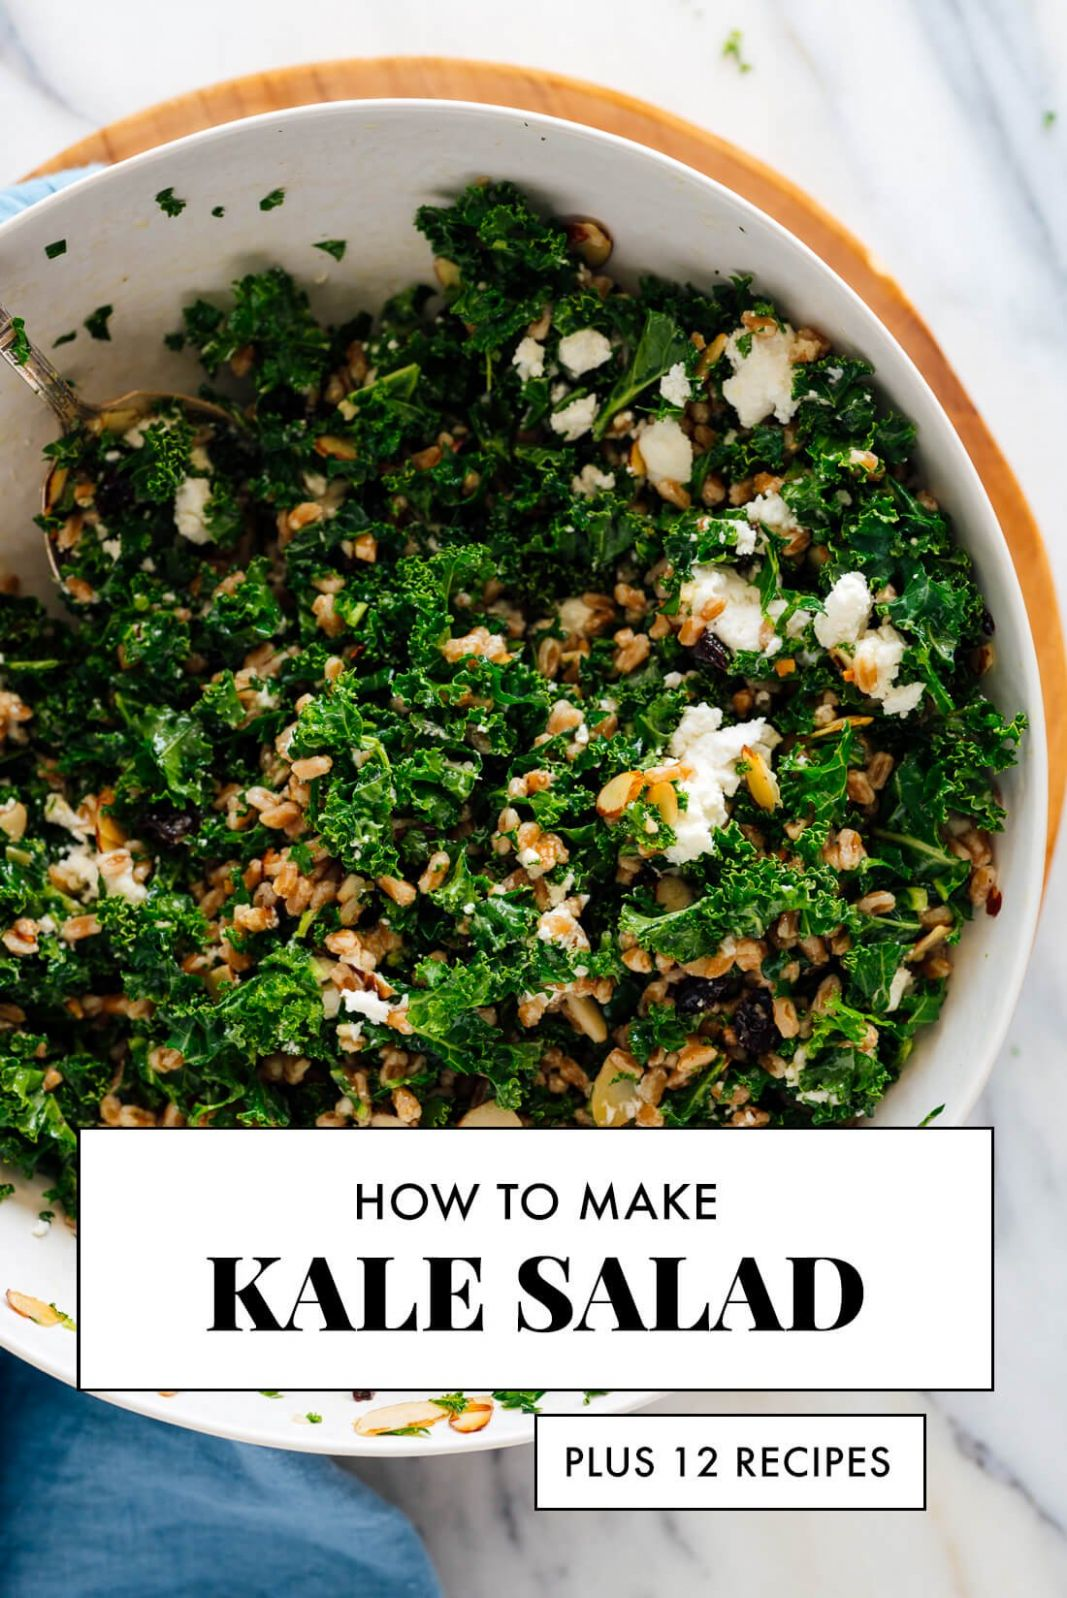 12 Favorite Kale Salads (plus tips!) - Cookie and Kate